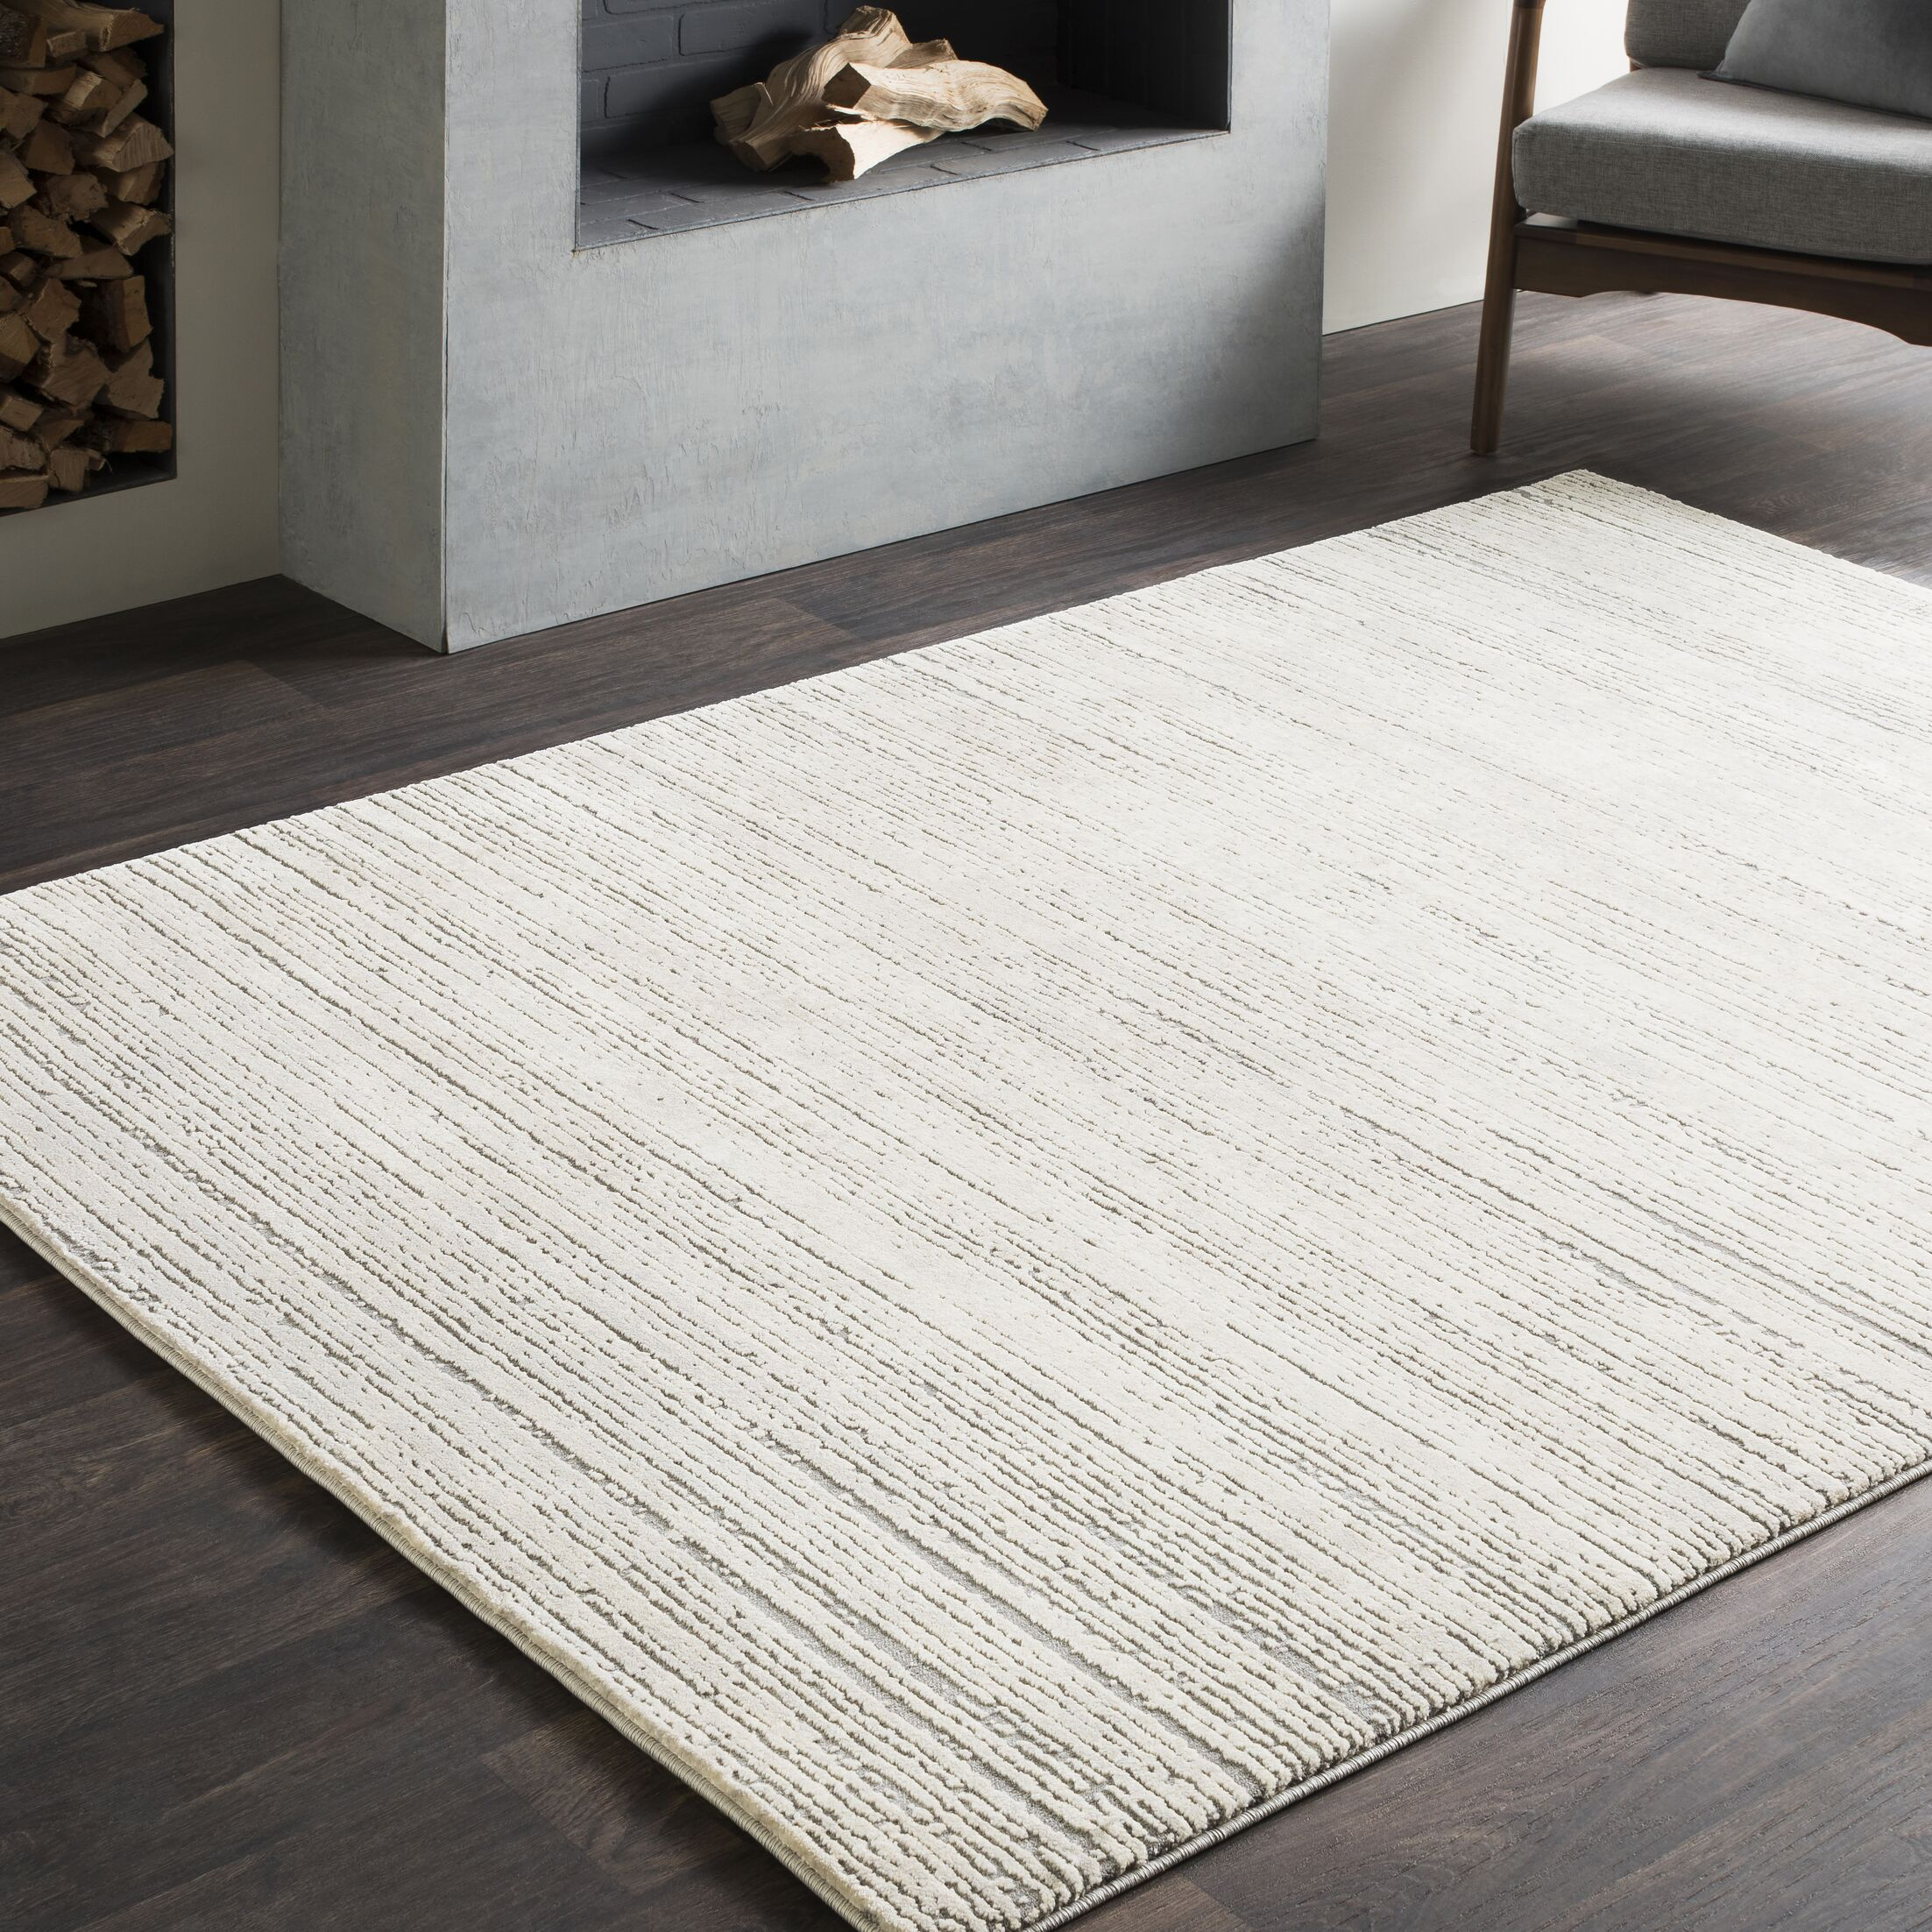 Bridgeton Distressed Modern Sleek Gray/Cream Area Rug Rug Size: Runner 2'7